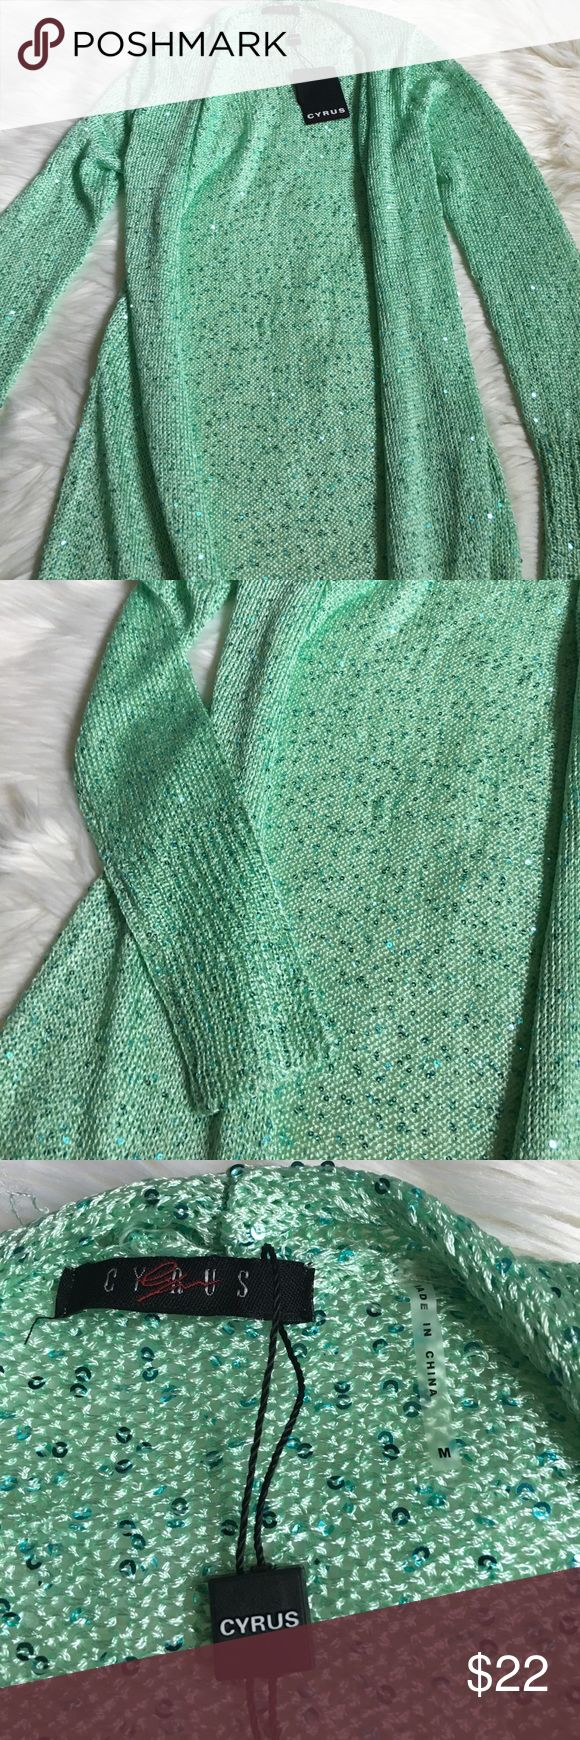 🎓GRADUATION SALE🎓Cyrus green sequin cardigan Size M. It is NWT but there are several small snags. Not very noticeable, but for that reason I'm not listing as NWT. Price firm unless bundled Sweaters Cardigans